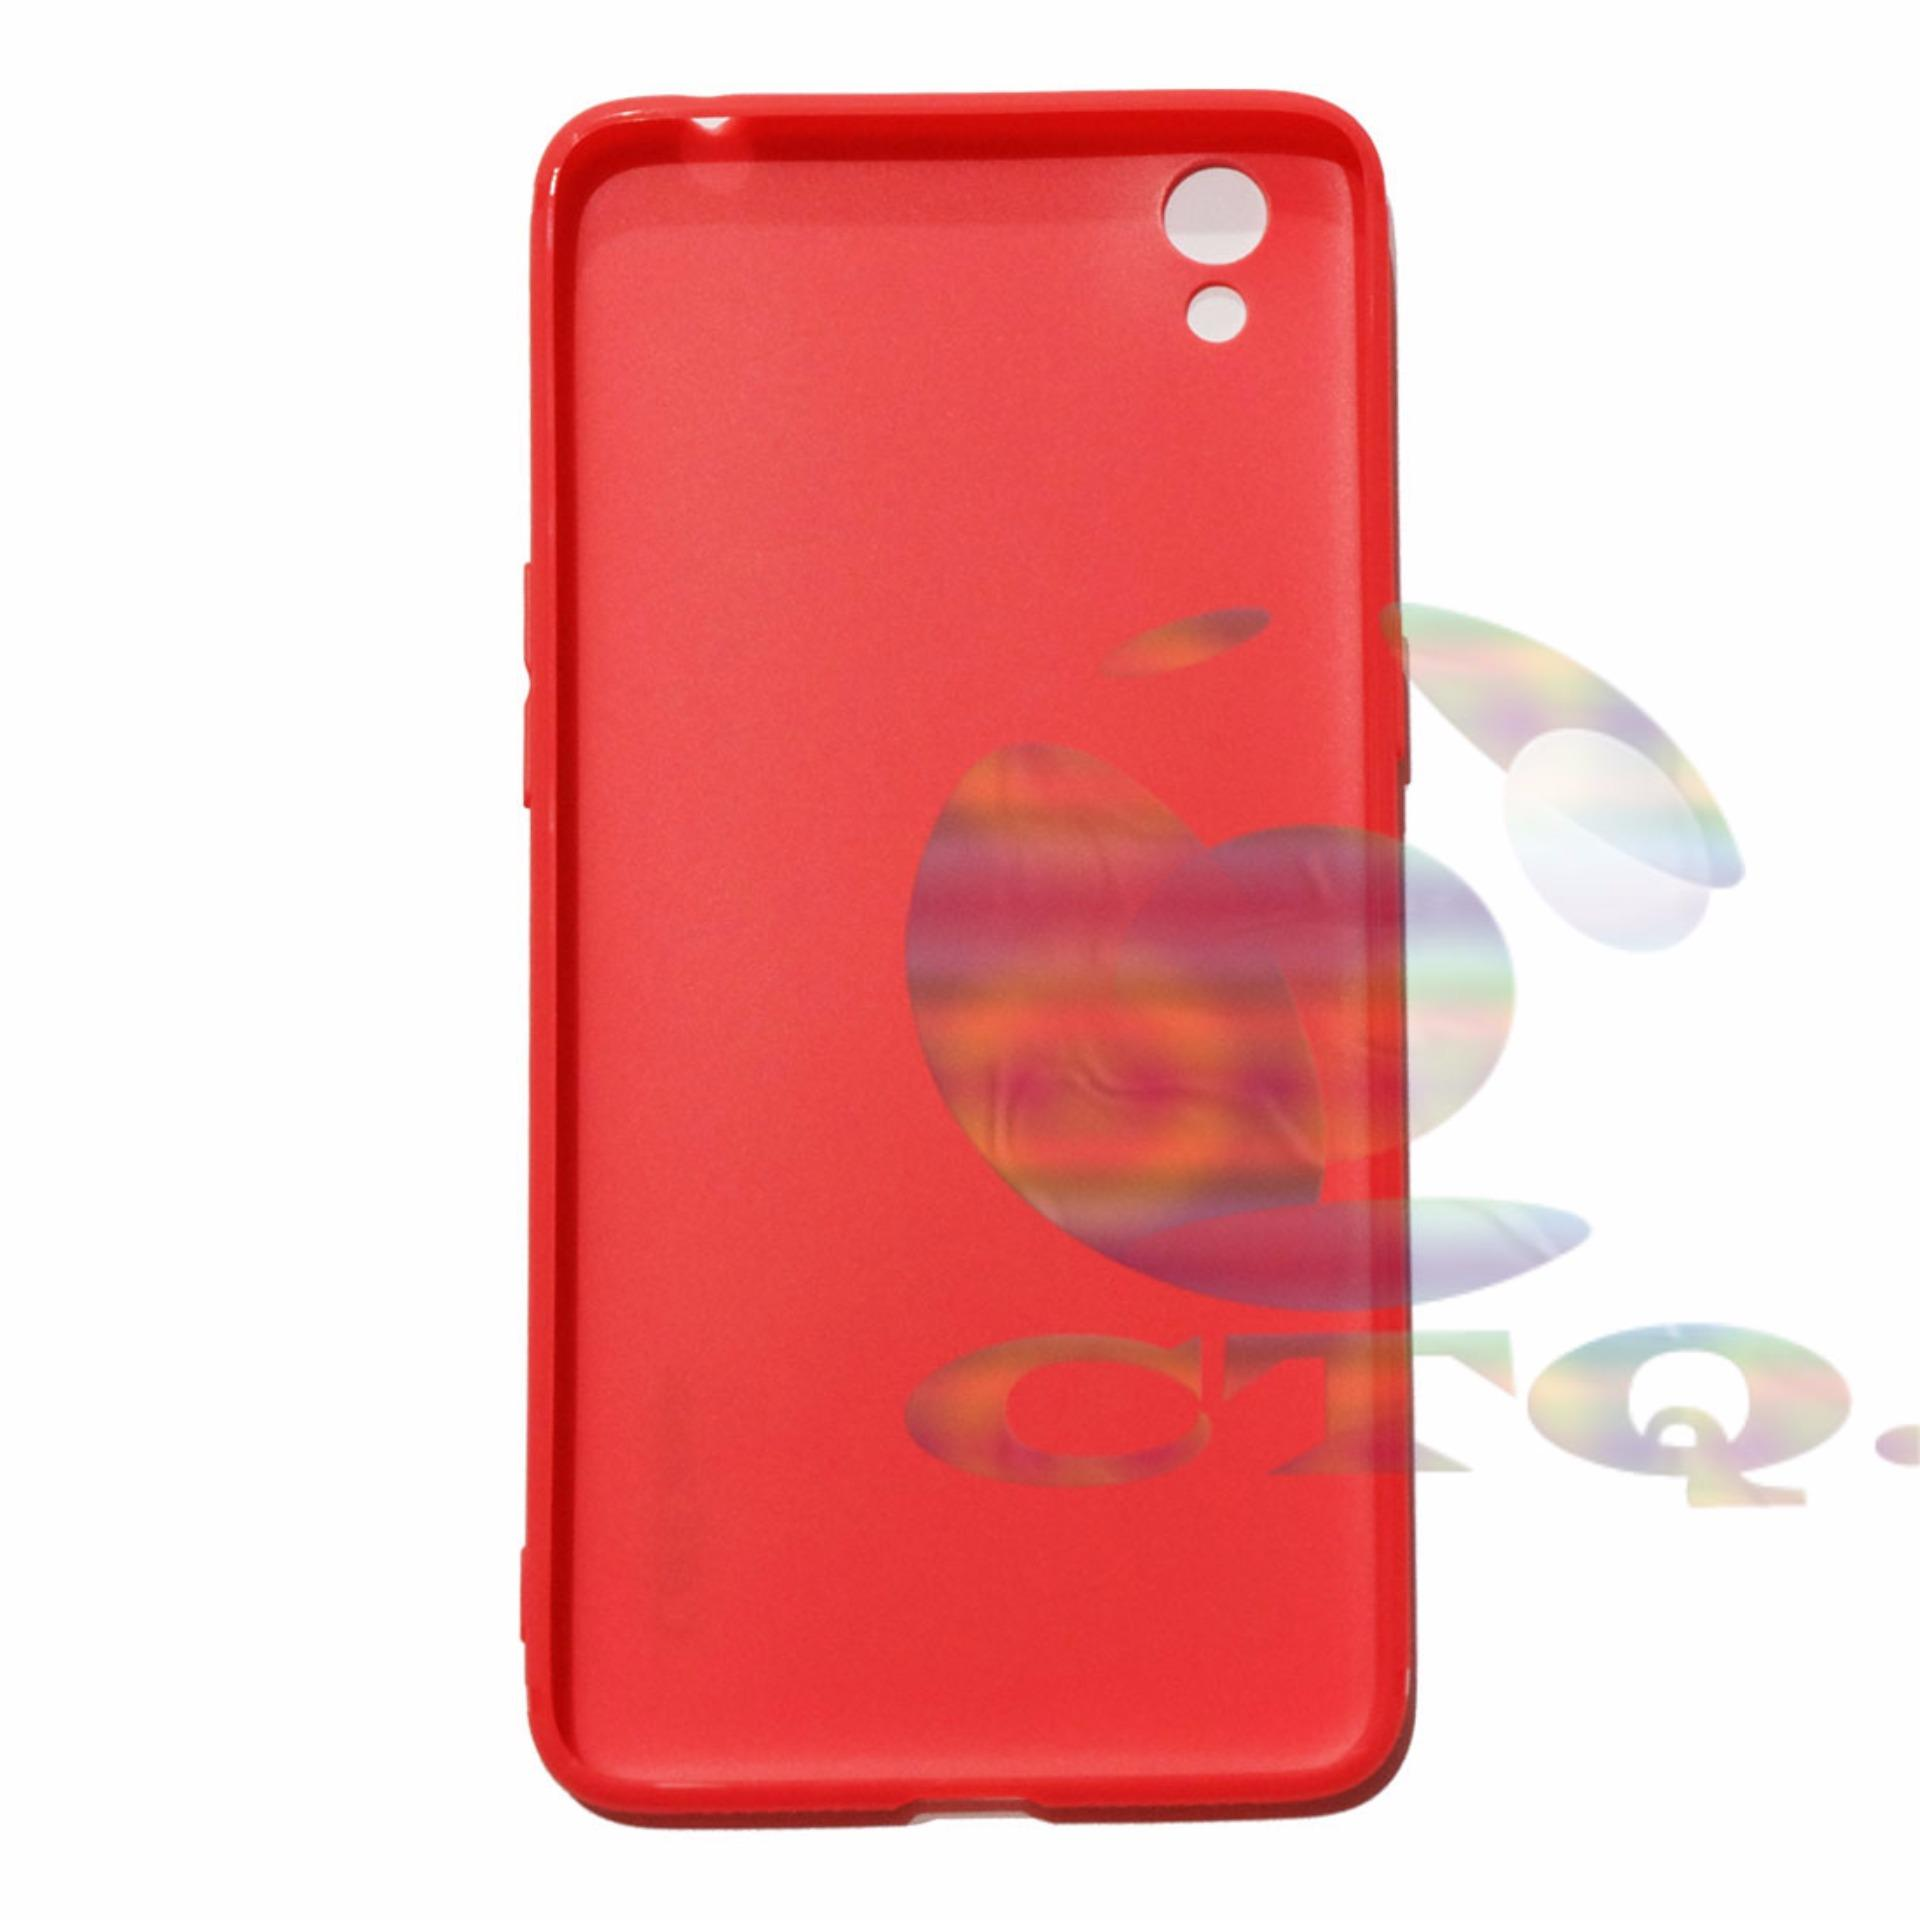 Lize Jelly Case Oppo A37 Neo 9 TPU Candy Rubber Skin Soft Back .